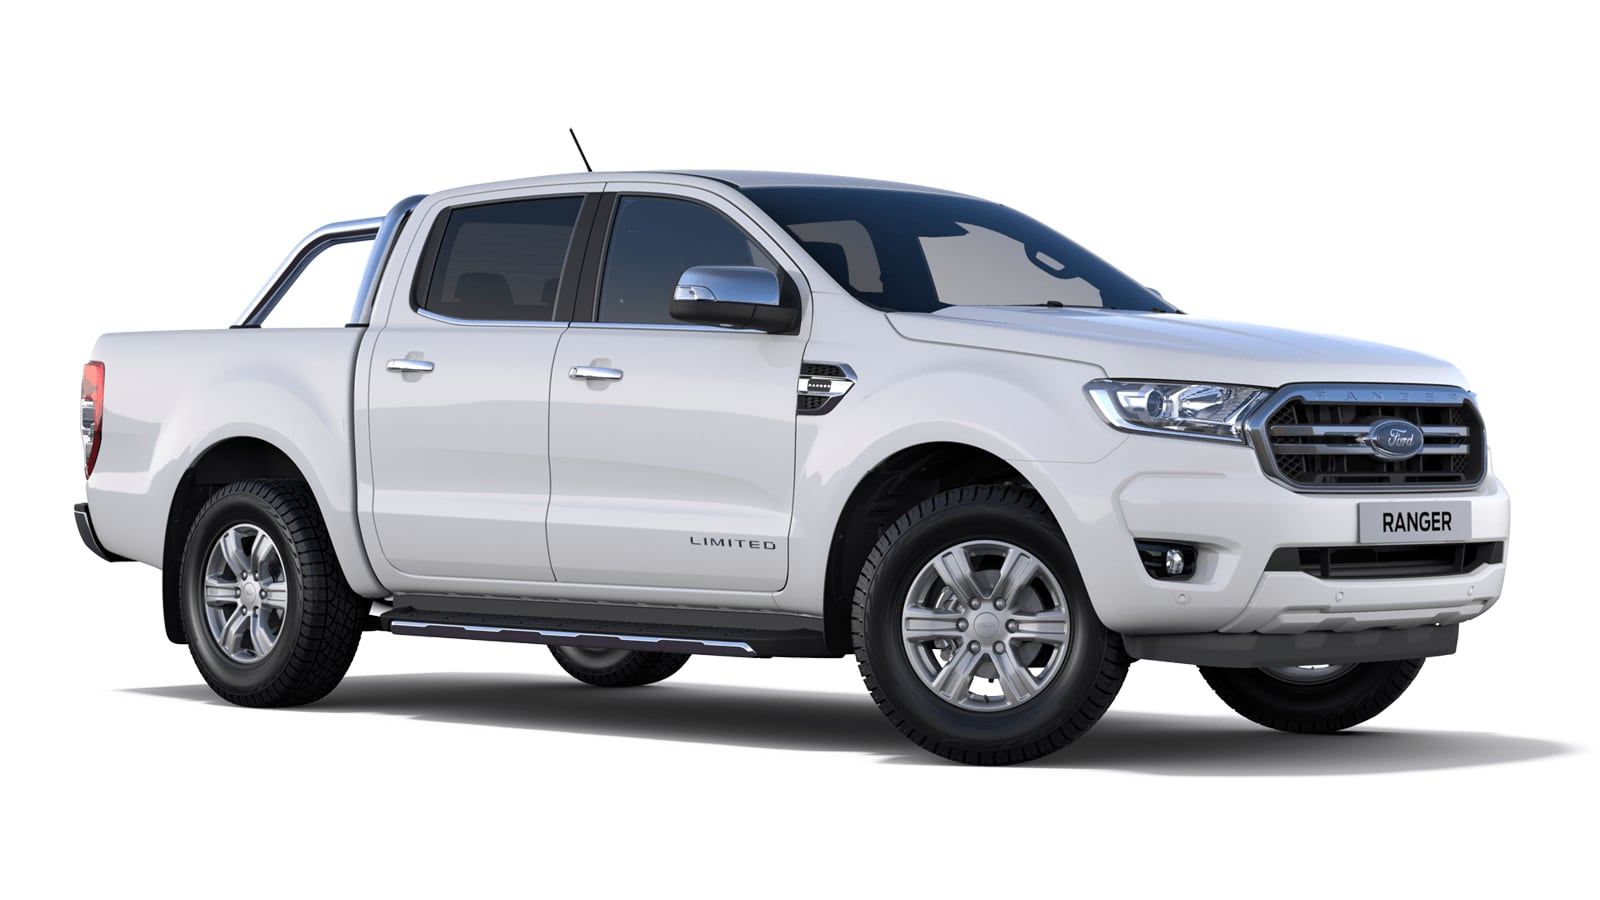 New Ford Ranger at Maxwell Motors